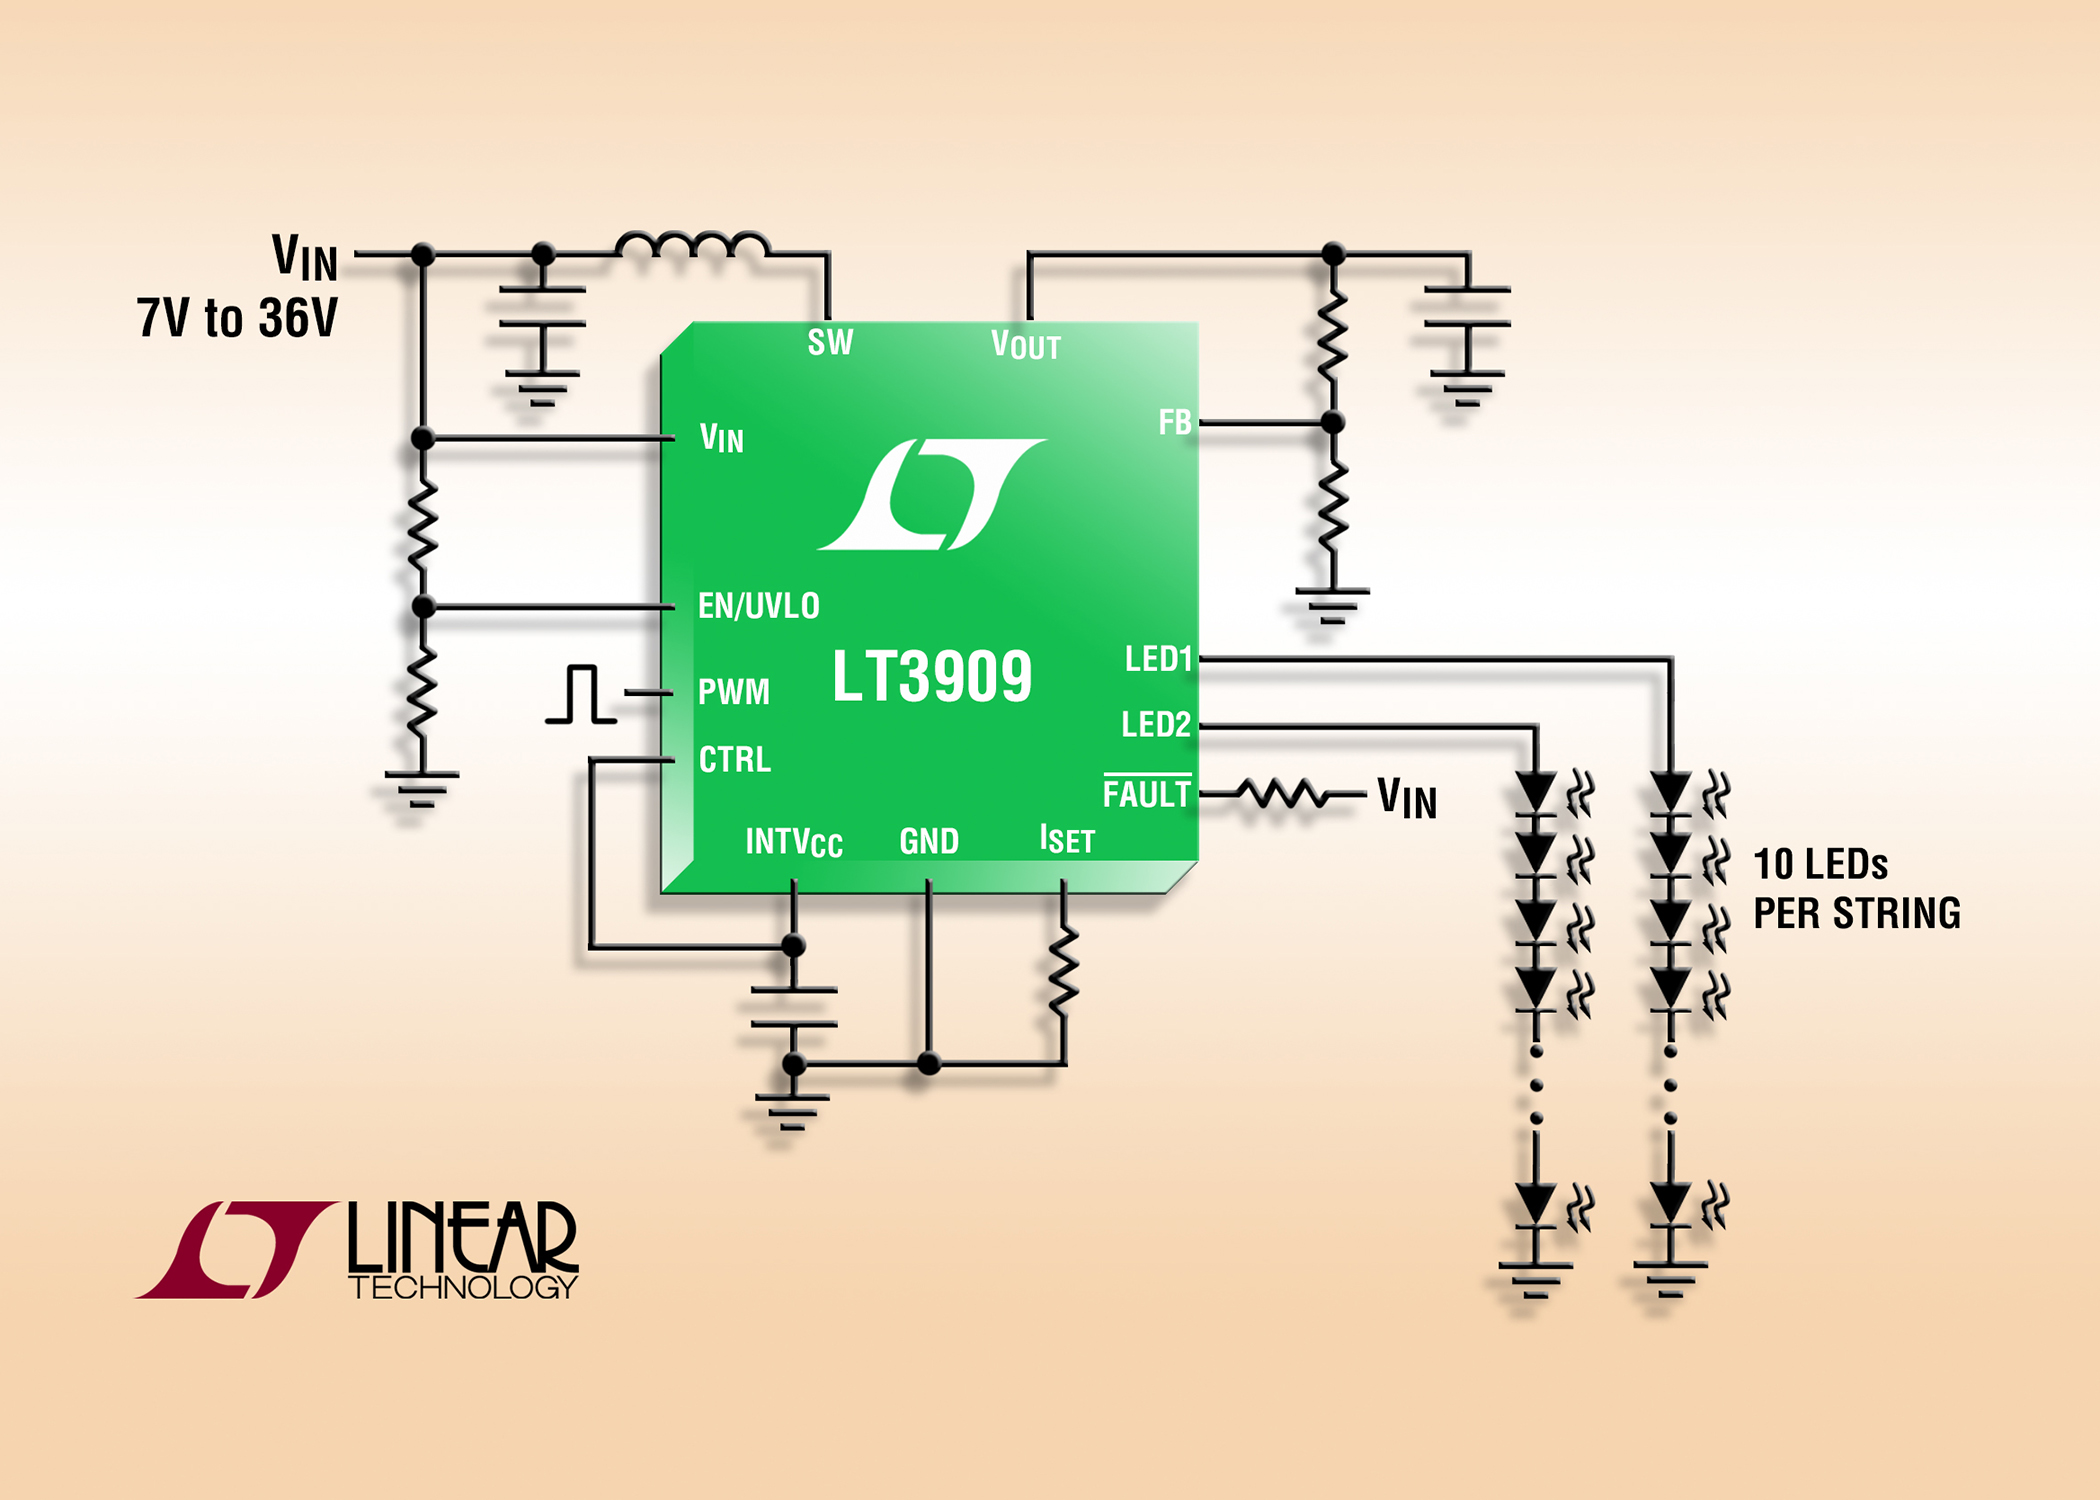 constant current led driver can drive two strings of up to 10 ledsconstant current led driver can drive two strings of up to 10 leds at 50ma